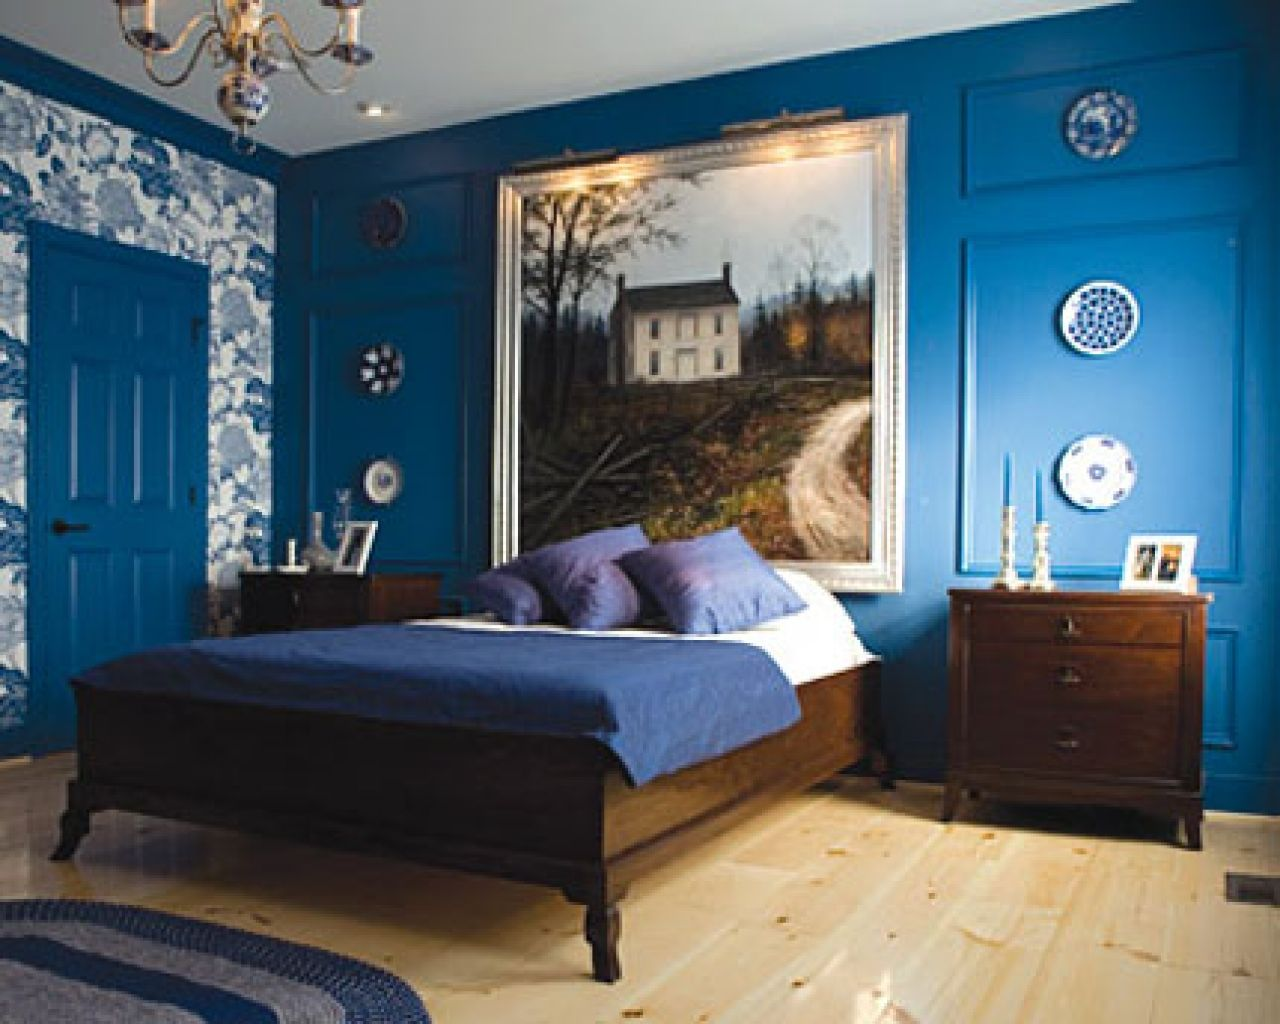 Brown and dark blue bedroom - Bedroom Painting Design Ideas Pretty Natural Bedroom Paint Ideas Cute Blue Wall Idp Interior Design